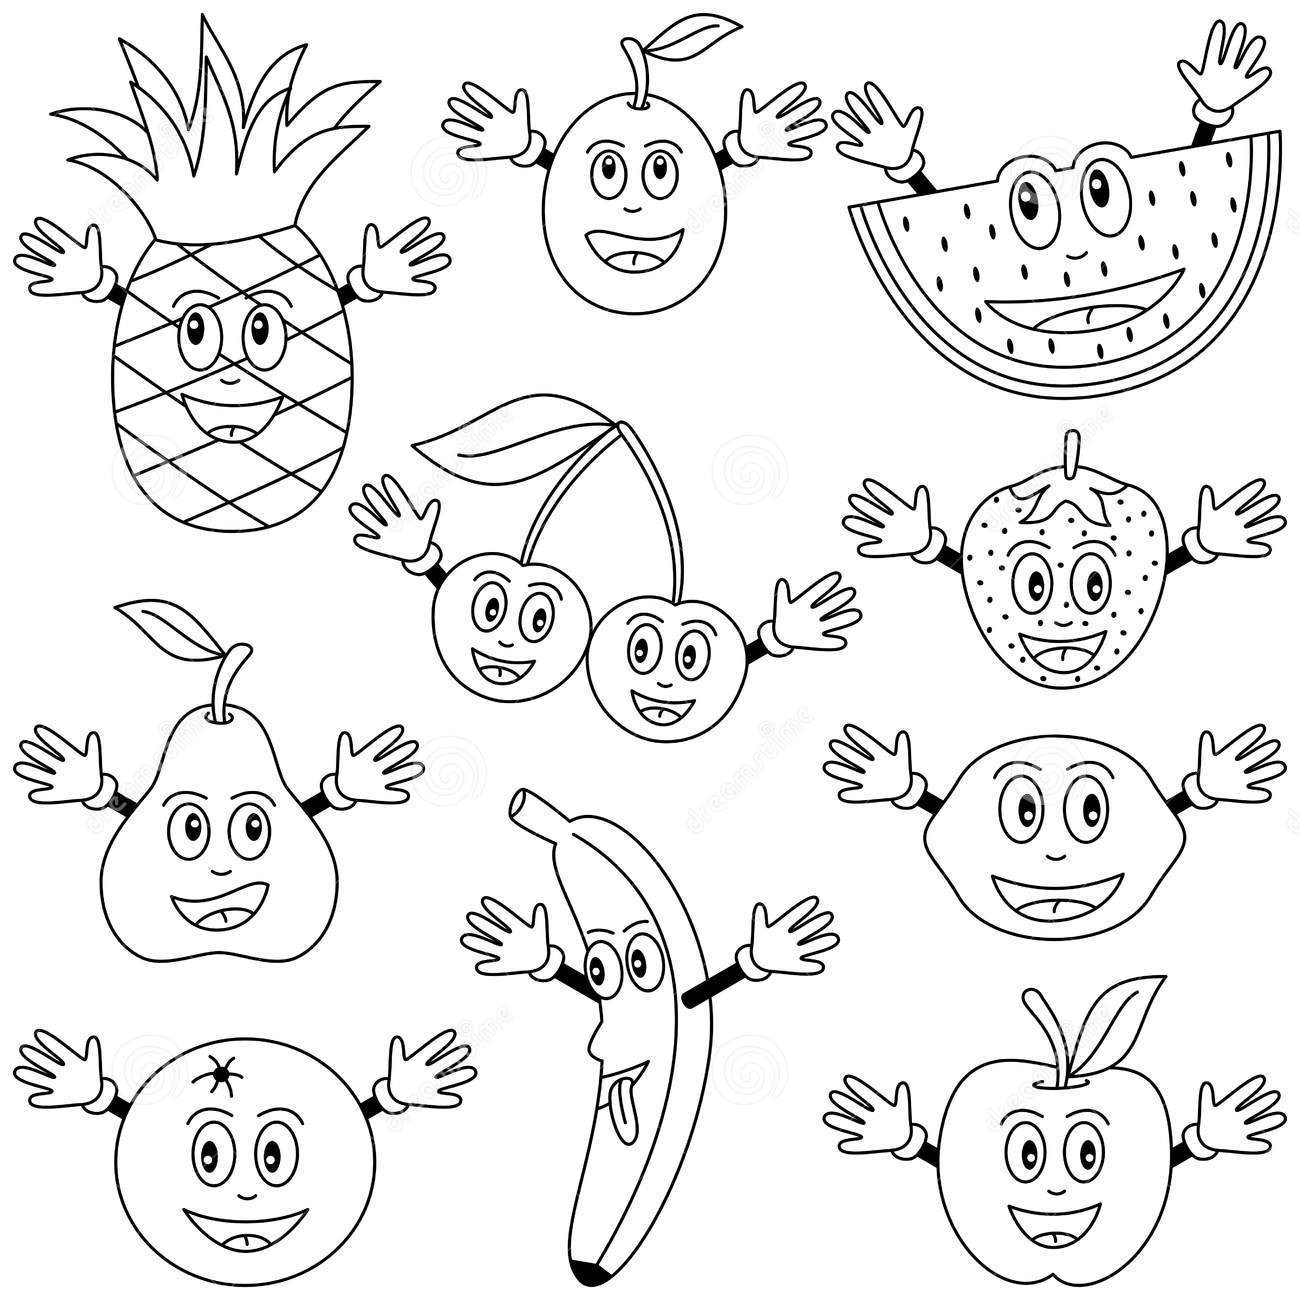 colorbook fruit basket | Fruits coloring pages, Fruits coloring ... | 1297x1300